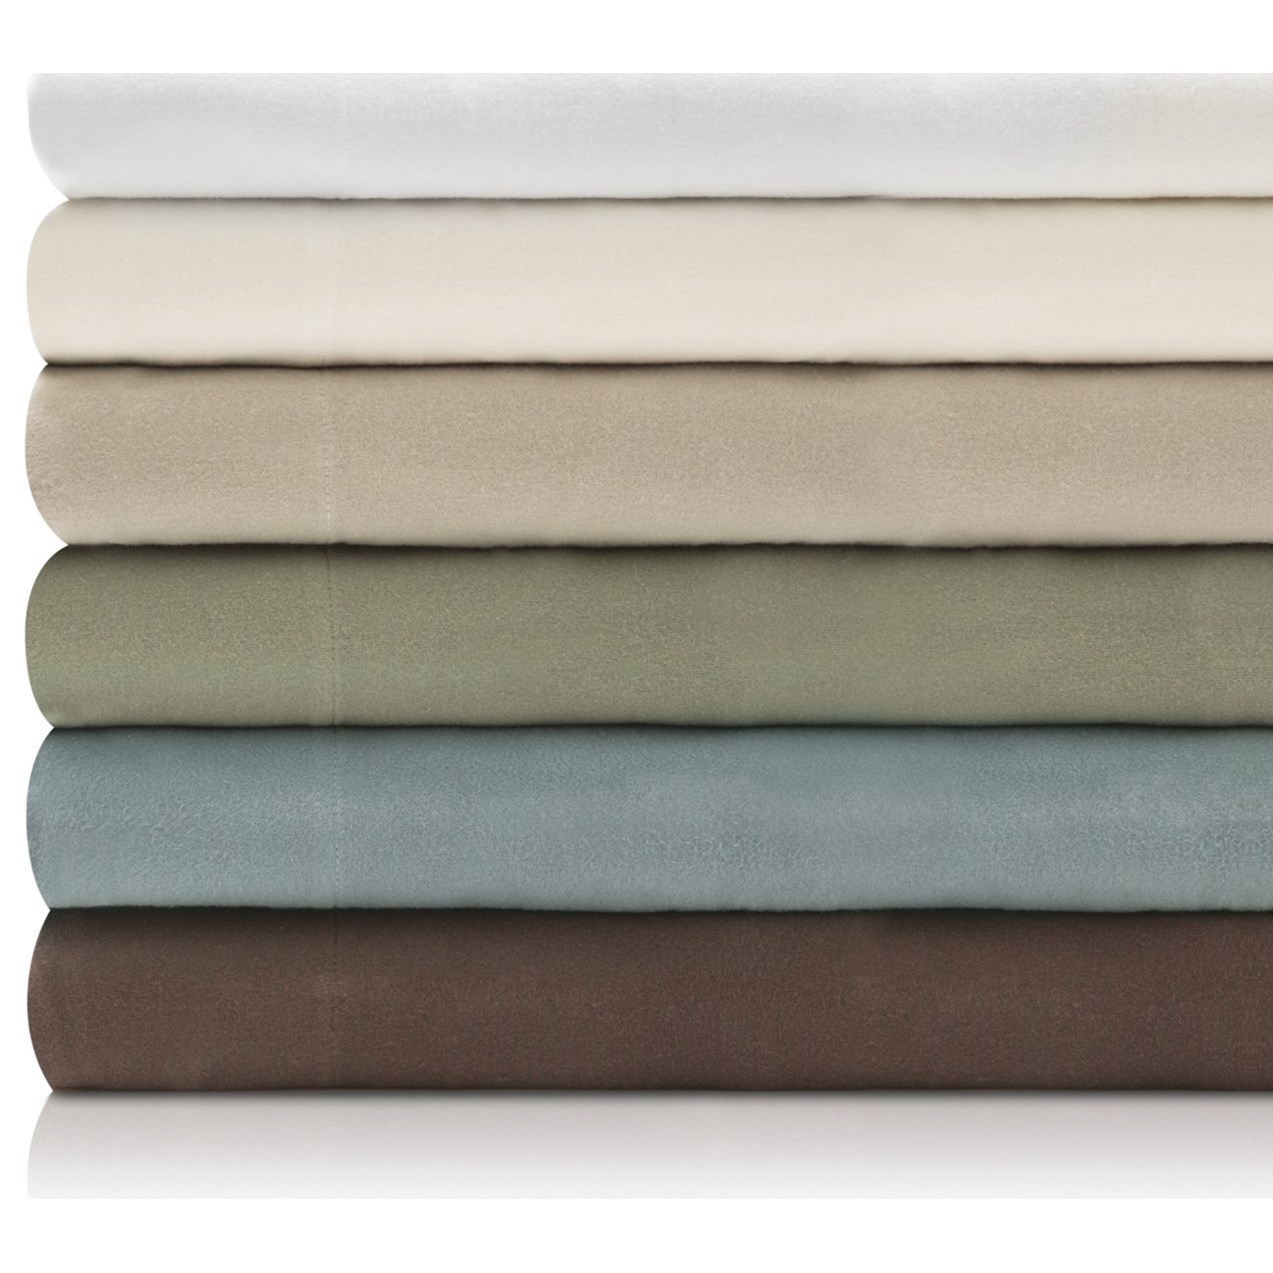 Malouf Portuguese Flannel Cal King Woven™ Portuguese Flannel Sheet Set - Item Number: WO19CKWHFS